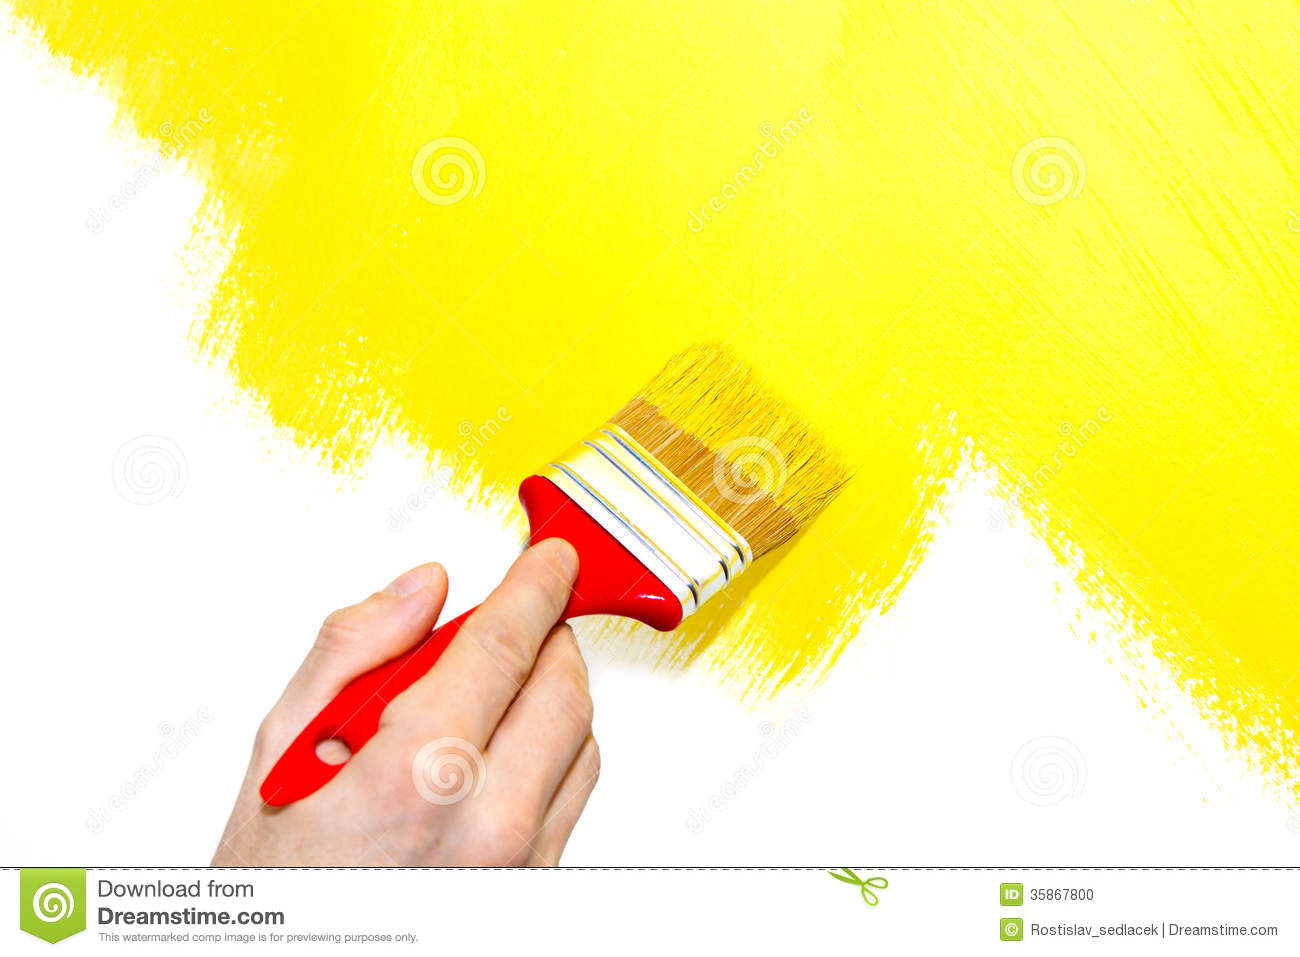 Painting a wall yellow stock illustration. Illustration of ...